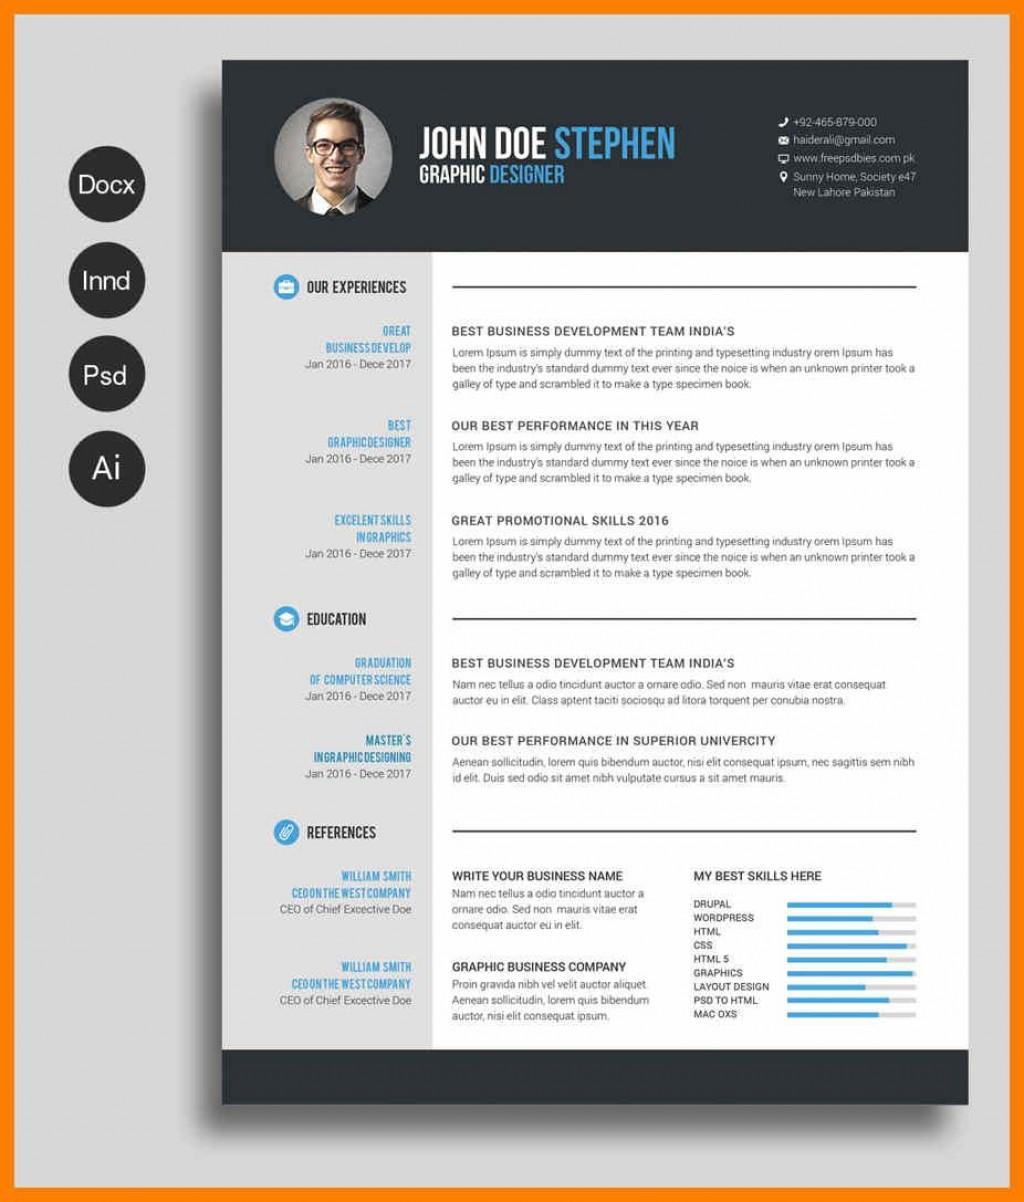 004 Phenomenal Download Template For Word Idea  Wordpres Free Resume 2007 Addres LabelLarge